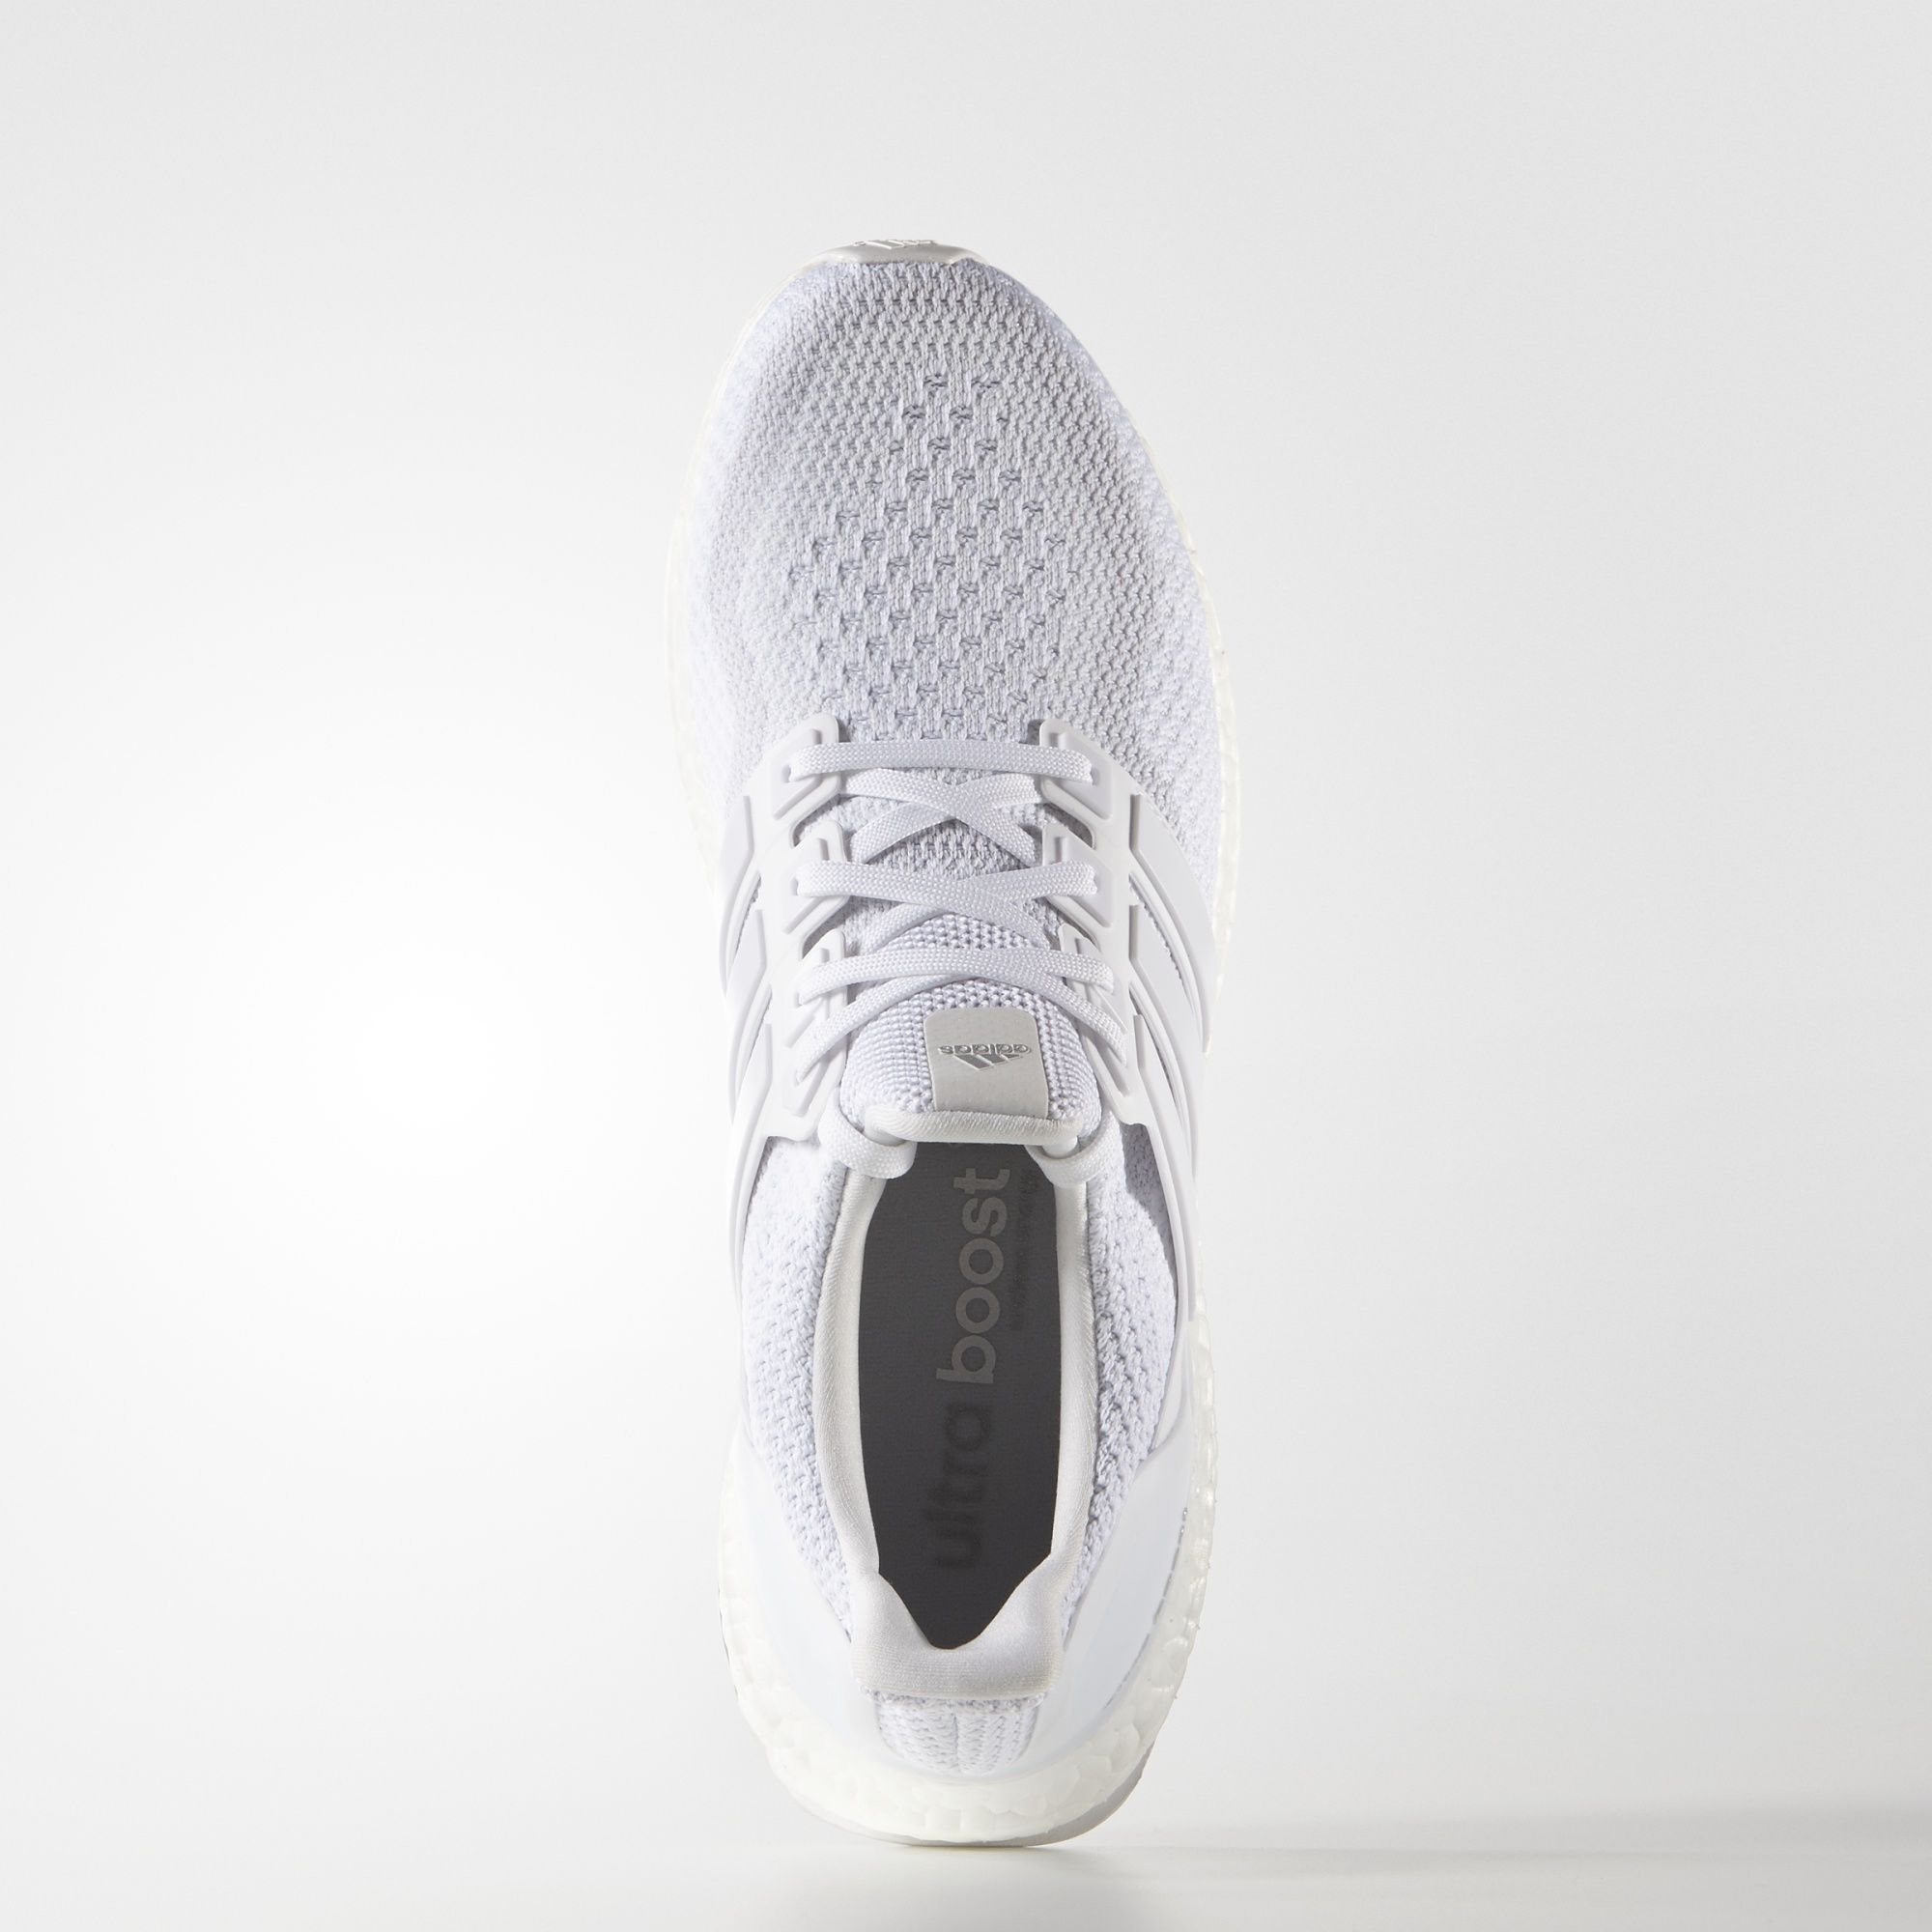 13e04affe10f8 wholesale adidas ultra boost white v2 c7e9e 1c571  hot adidas ultra boost  triple white v2 l follow us on twitter https cf6f9 a3503